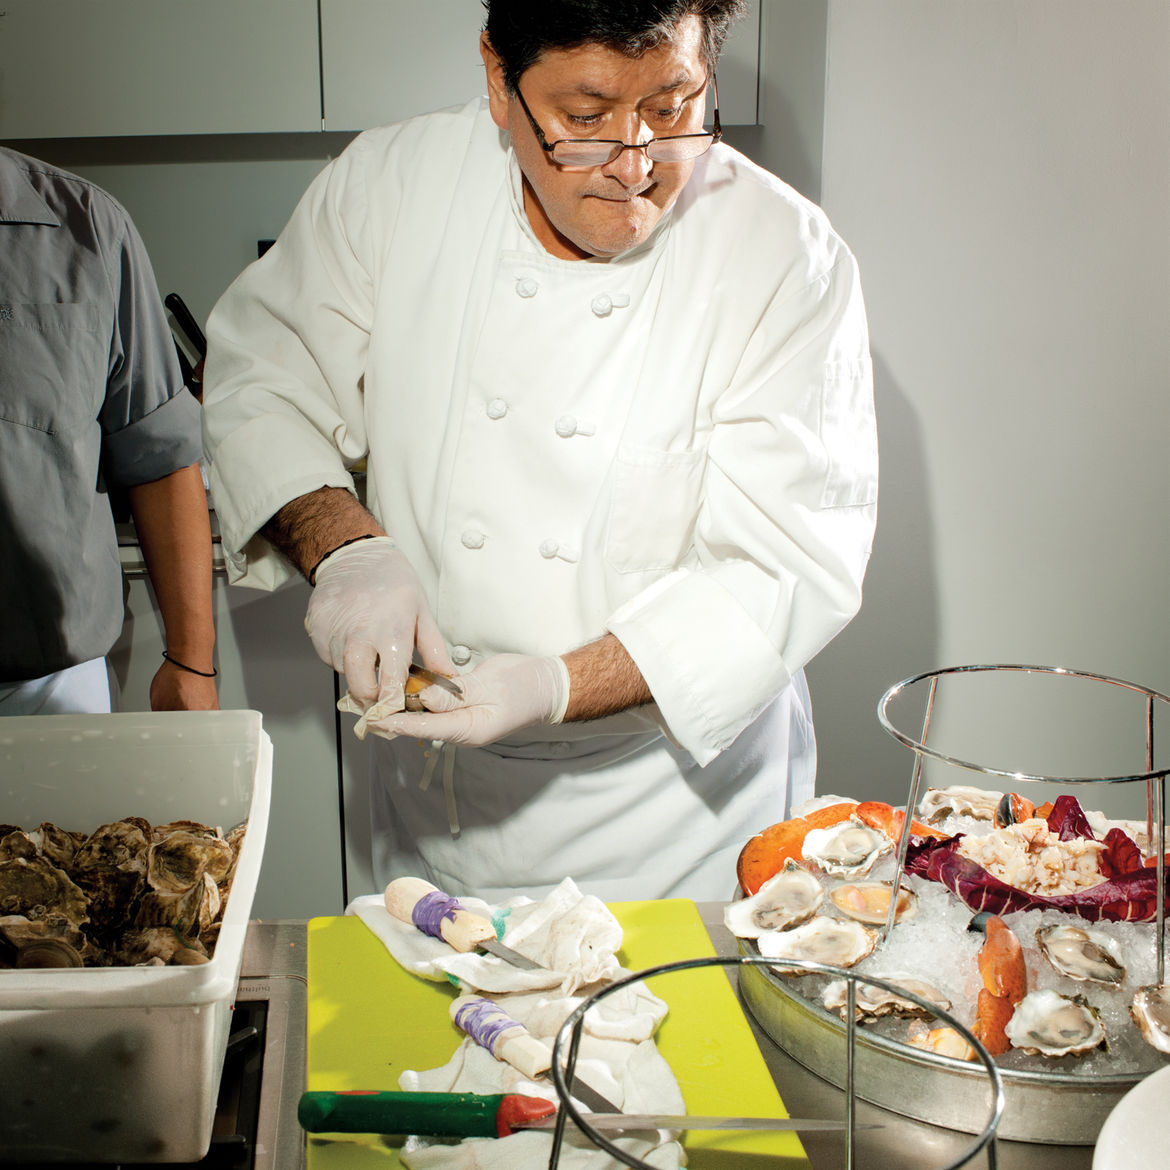 Chef shuckling oysters